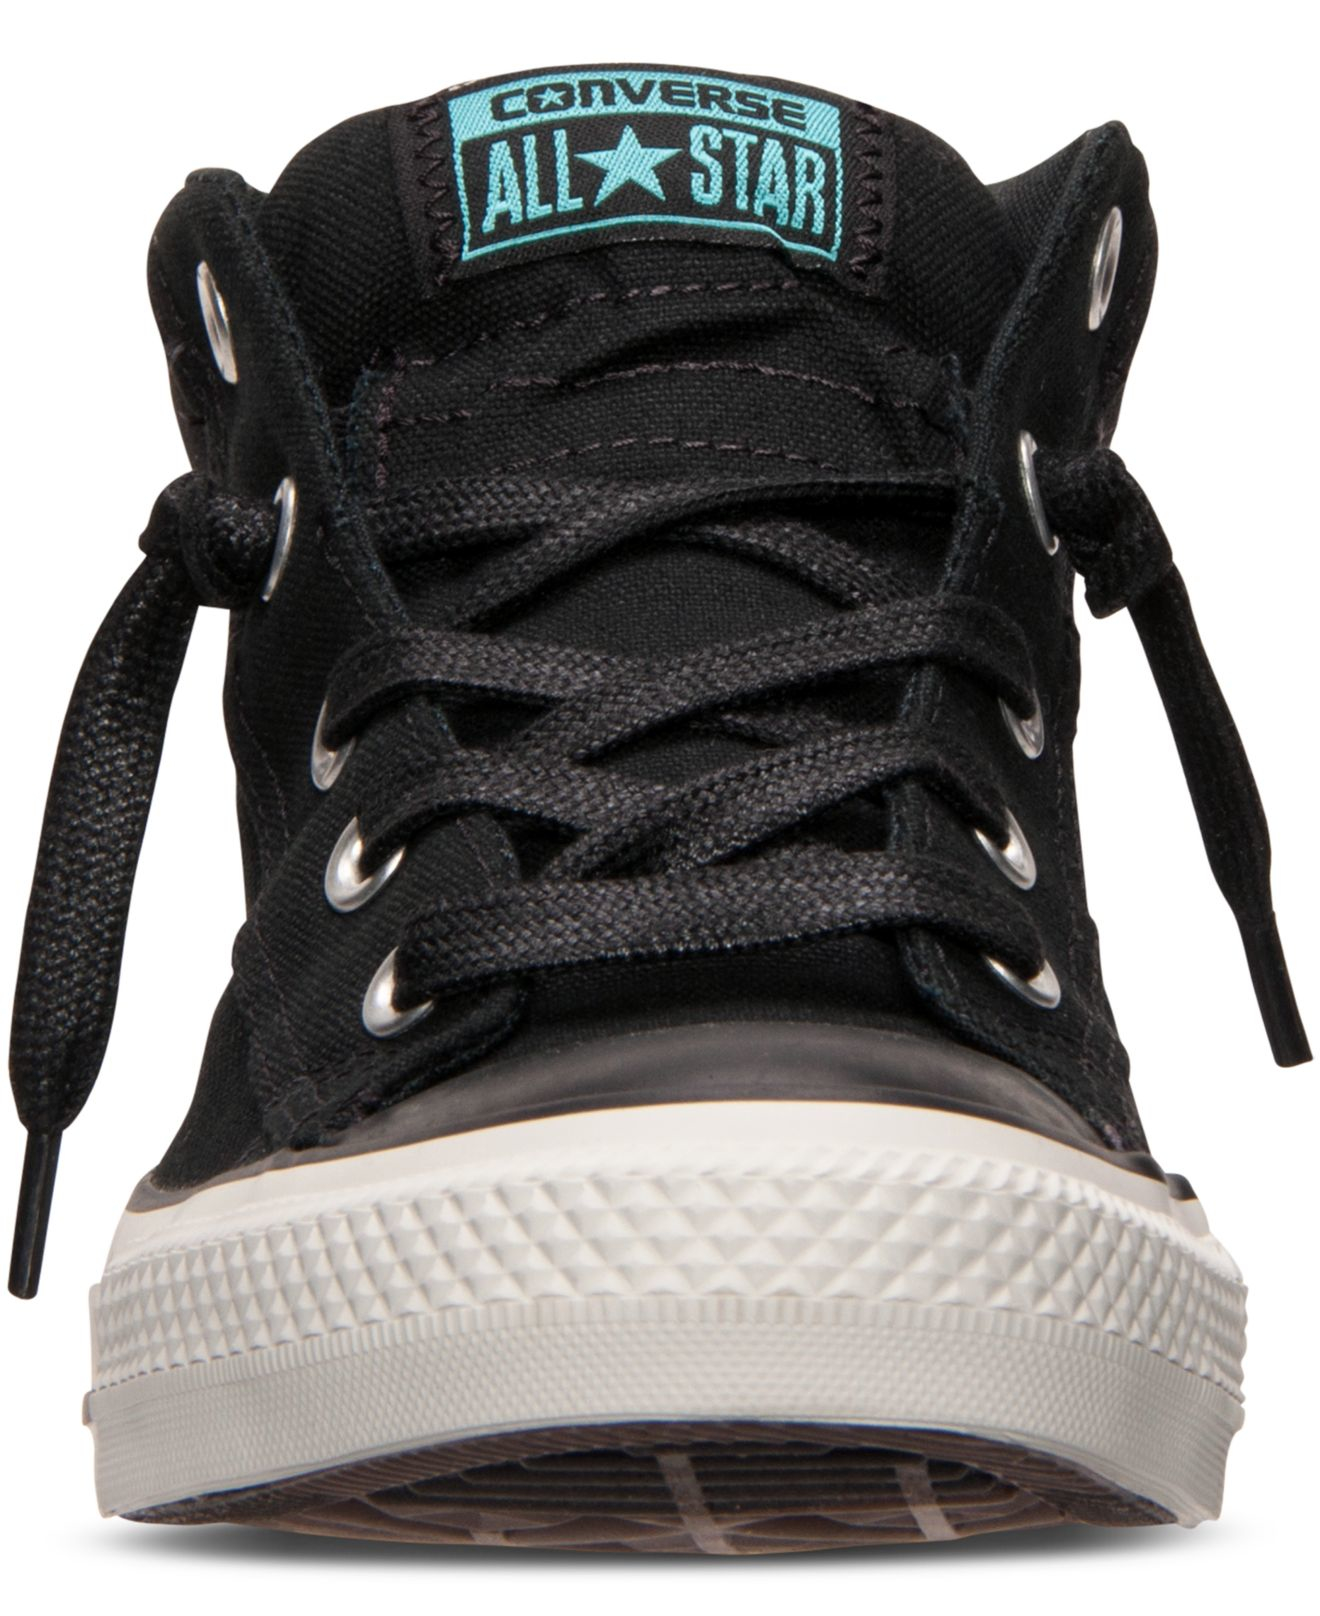 570ac219caa580 ... france lyst converse mens chuck taylor street mid casual sneakers from  9db7b 5c0fb clearance mens converse chuck taylor all star ...